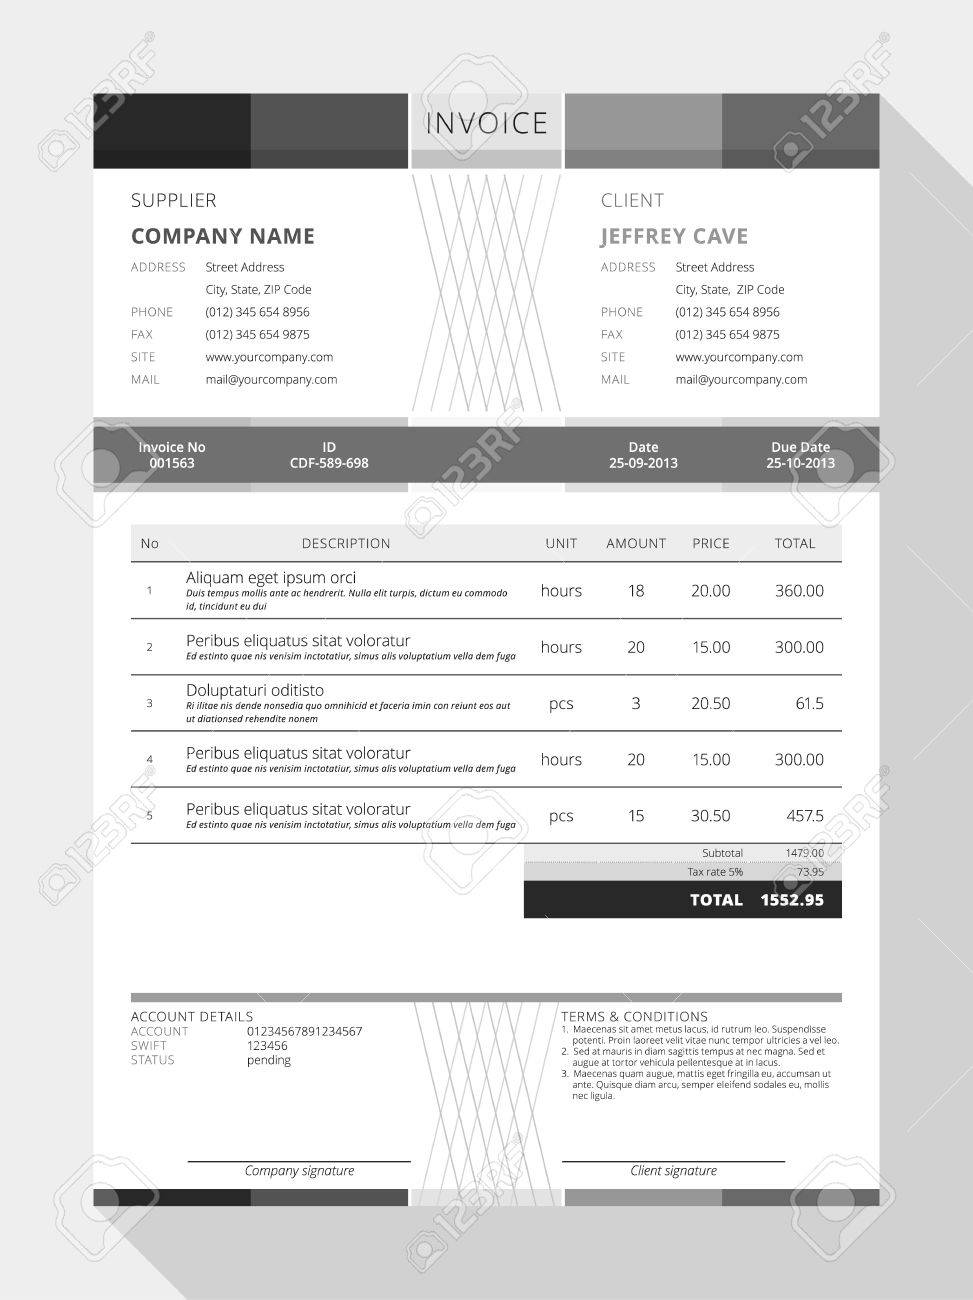 Ultrablogus  Inspiring Design An Invoice  Professional Graphic Design Invoice  With Fascinating Vector Customizable Invoice Form Template Design Vector   Design An Invoice With Archaic Invoice Template Printable Also Invoice On Cars In Addition Proforma Invoice Template Pdf And Free Blank Invoice Pdf As Well As Paypal Fees Invoice Additionally Sample Invoices Pdf From Happytomco With Ultrablogus  Fascinating Design An Invoice  Professional Graphic Design Invoice  With Archaic Vector Customizable Invoice Form Template Design Vector   Design An Invoice And Inspiring Invoice Template Printable Also Invoice On Cars In Addition Proforma Invoice Template Pdf From Happytomco